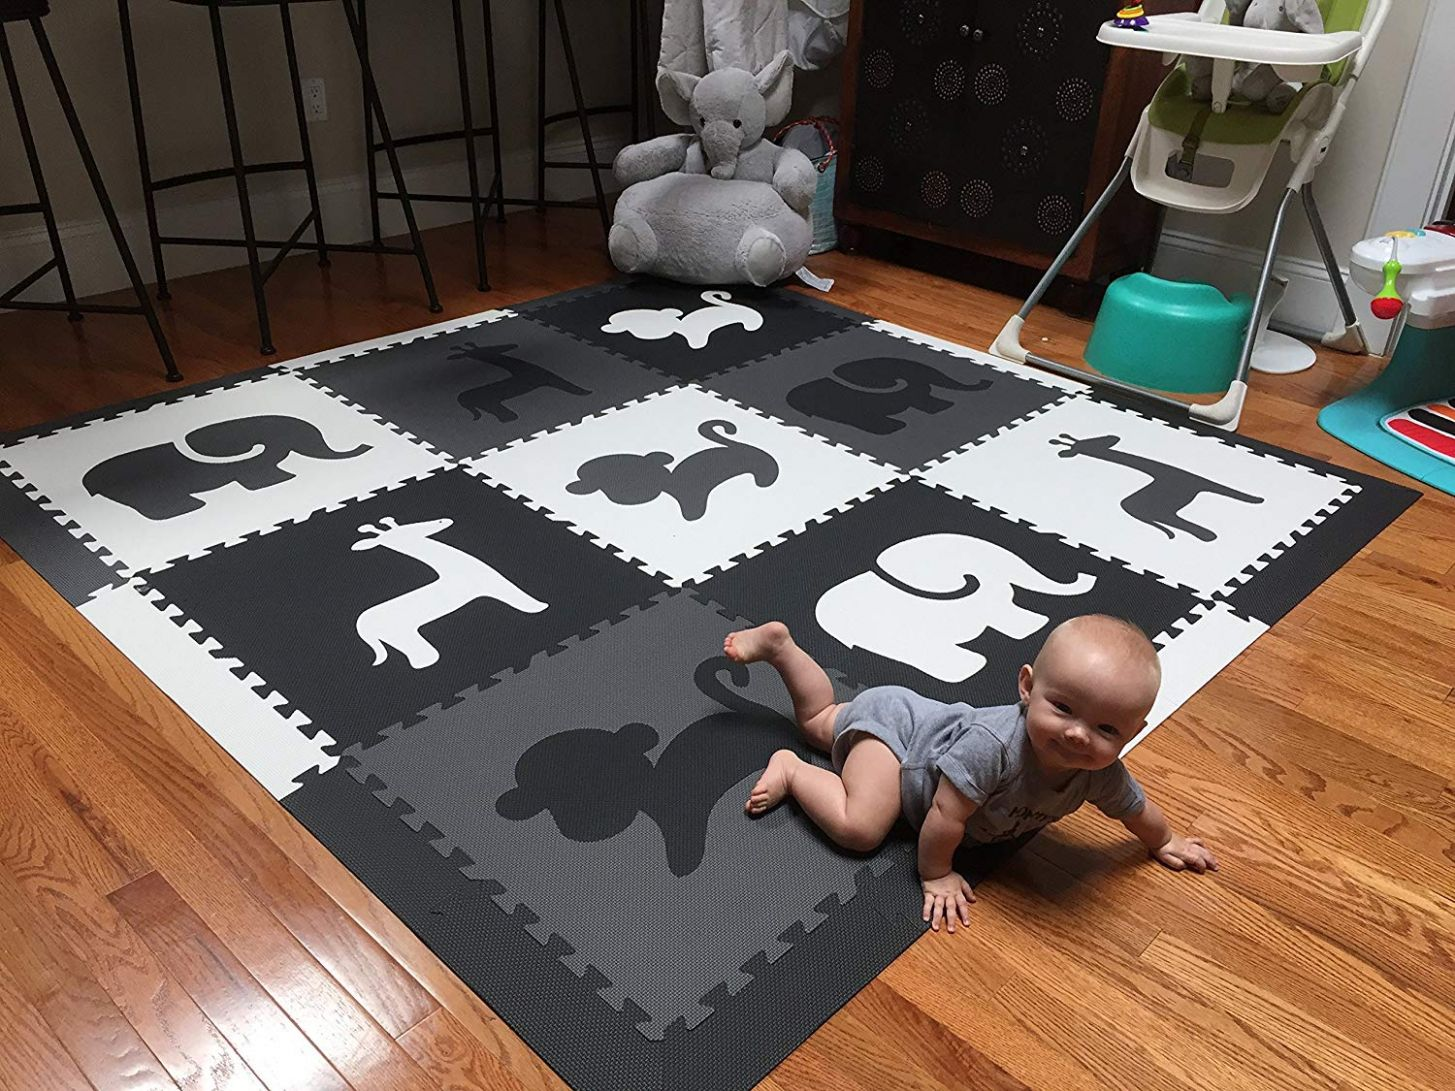 12 non toxic baby crawling mats for infant to play on